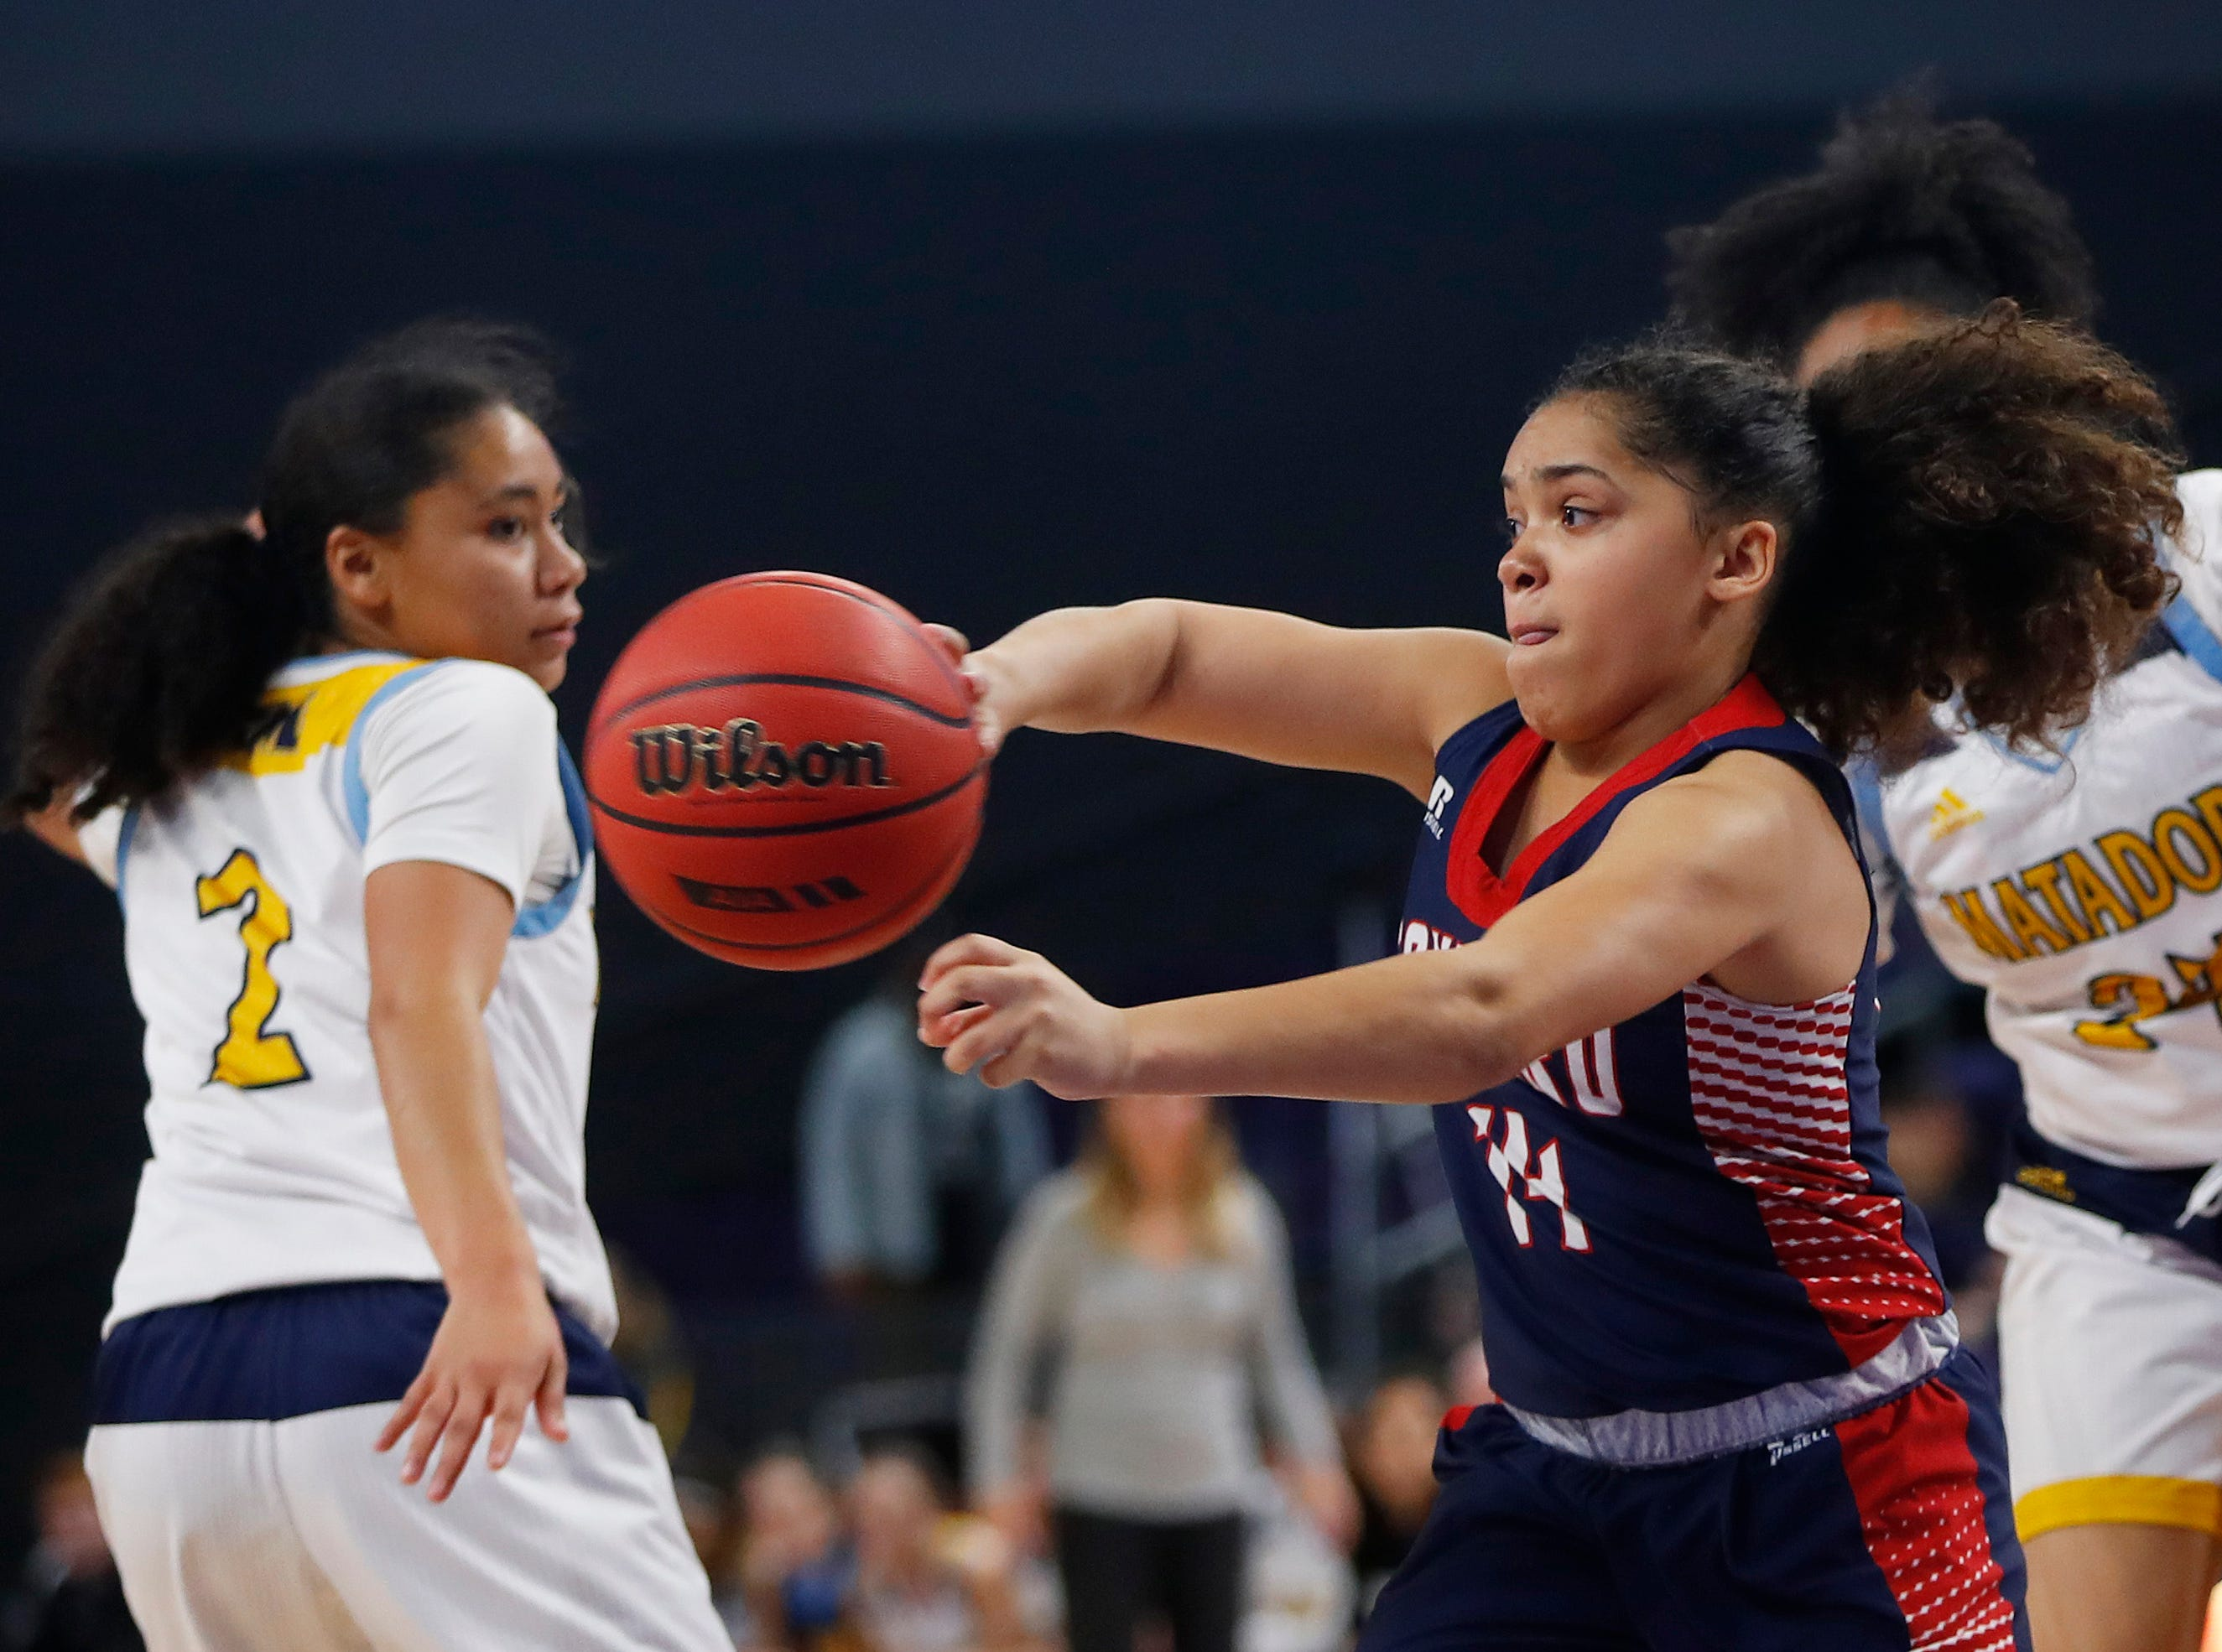 Sahuaro's Hayli Kubly (14) passes after getting past Shadow Mountain's Senya Rabouin (2) during second half of the 4A girls basketball semifinal game at Grand Canyon University Arena in Phoenix, Ariz. on February 22, 2019.